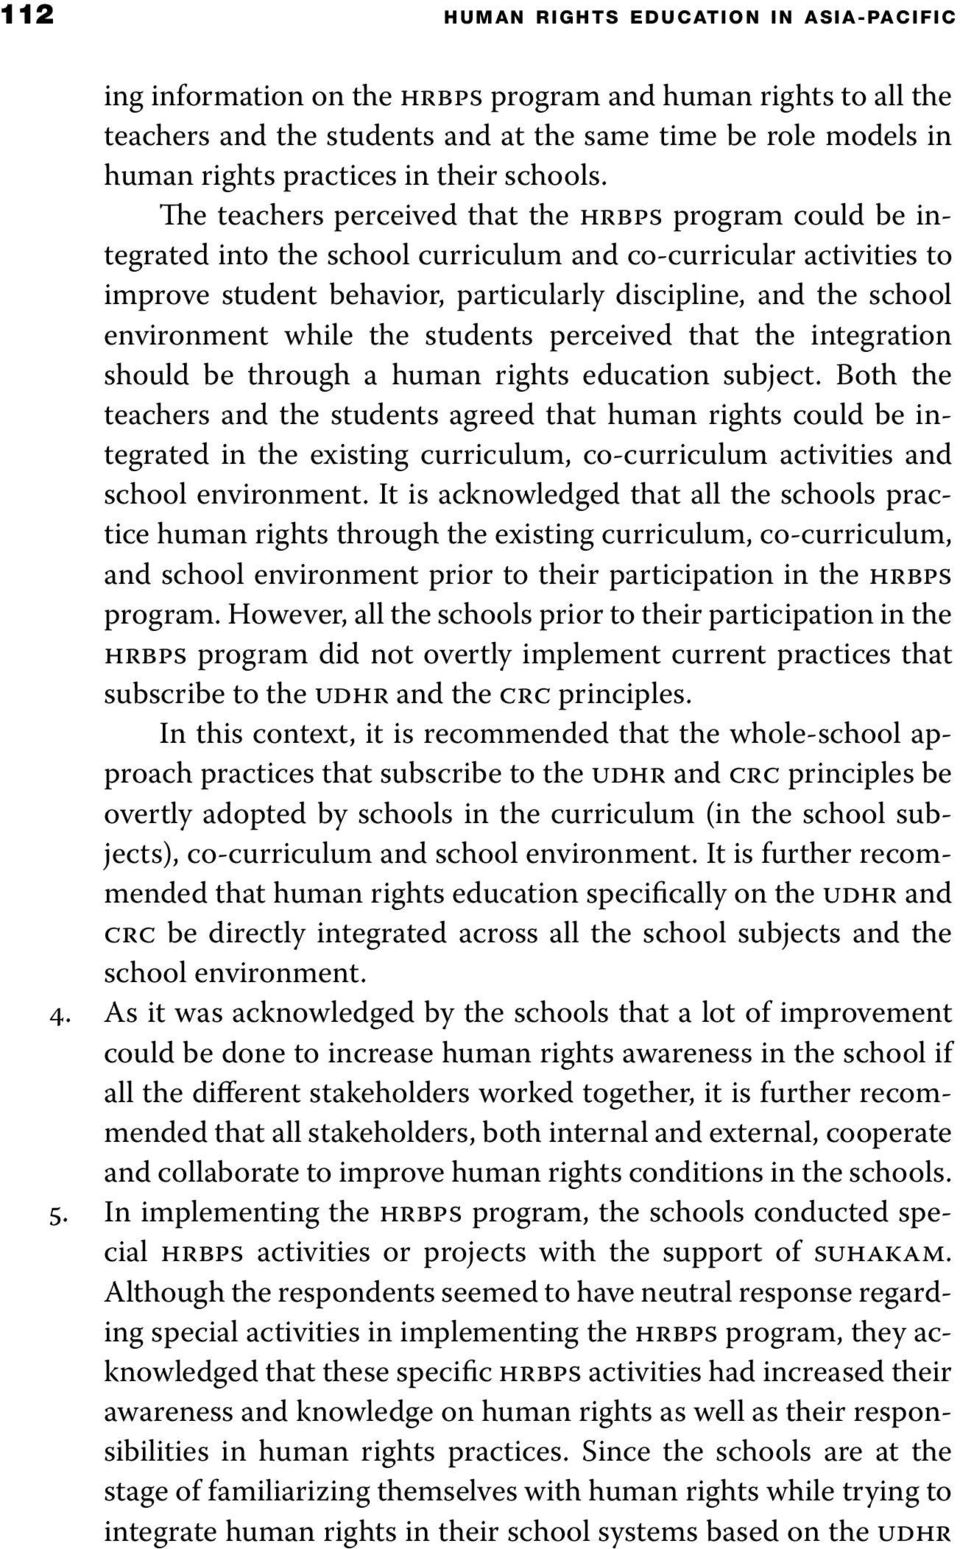 The teachers perceived that the hrbps program could be integrated into the school curriculum and co-curricular activities to improve student behavior, particularly discipline, and the school